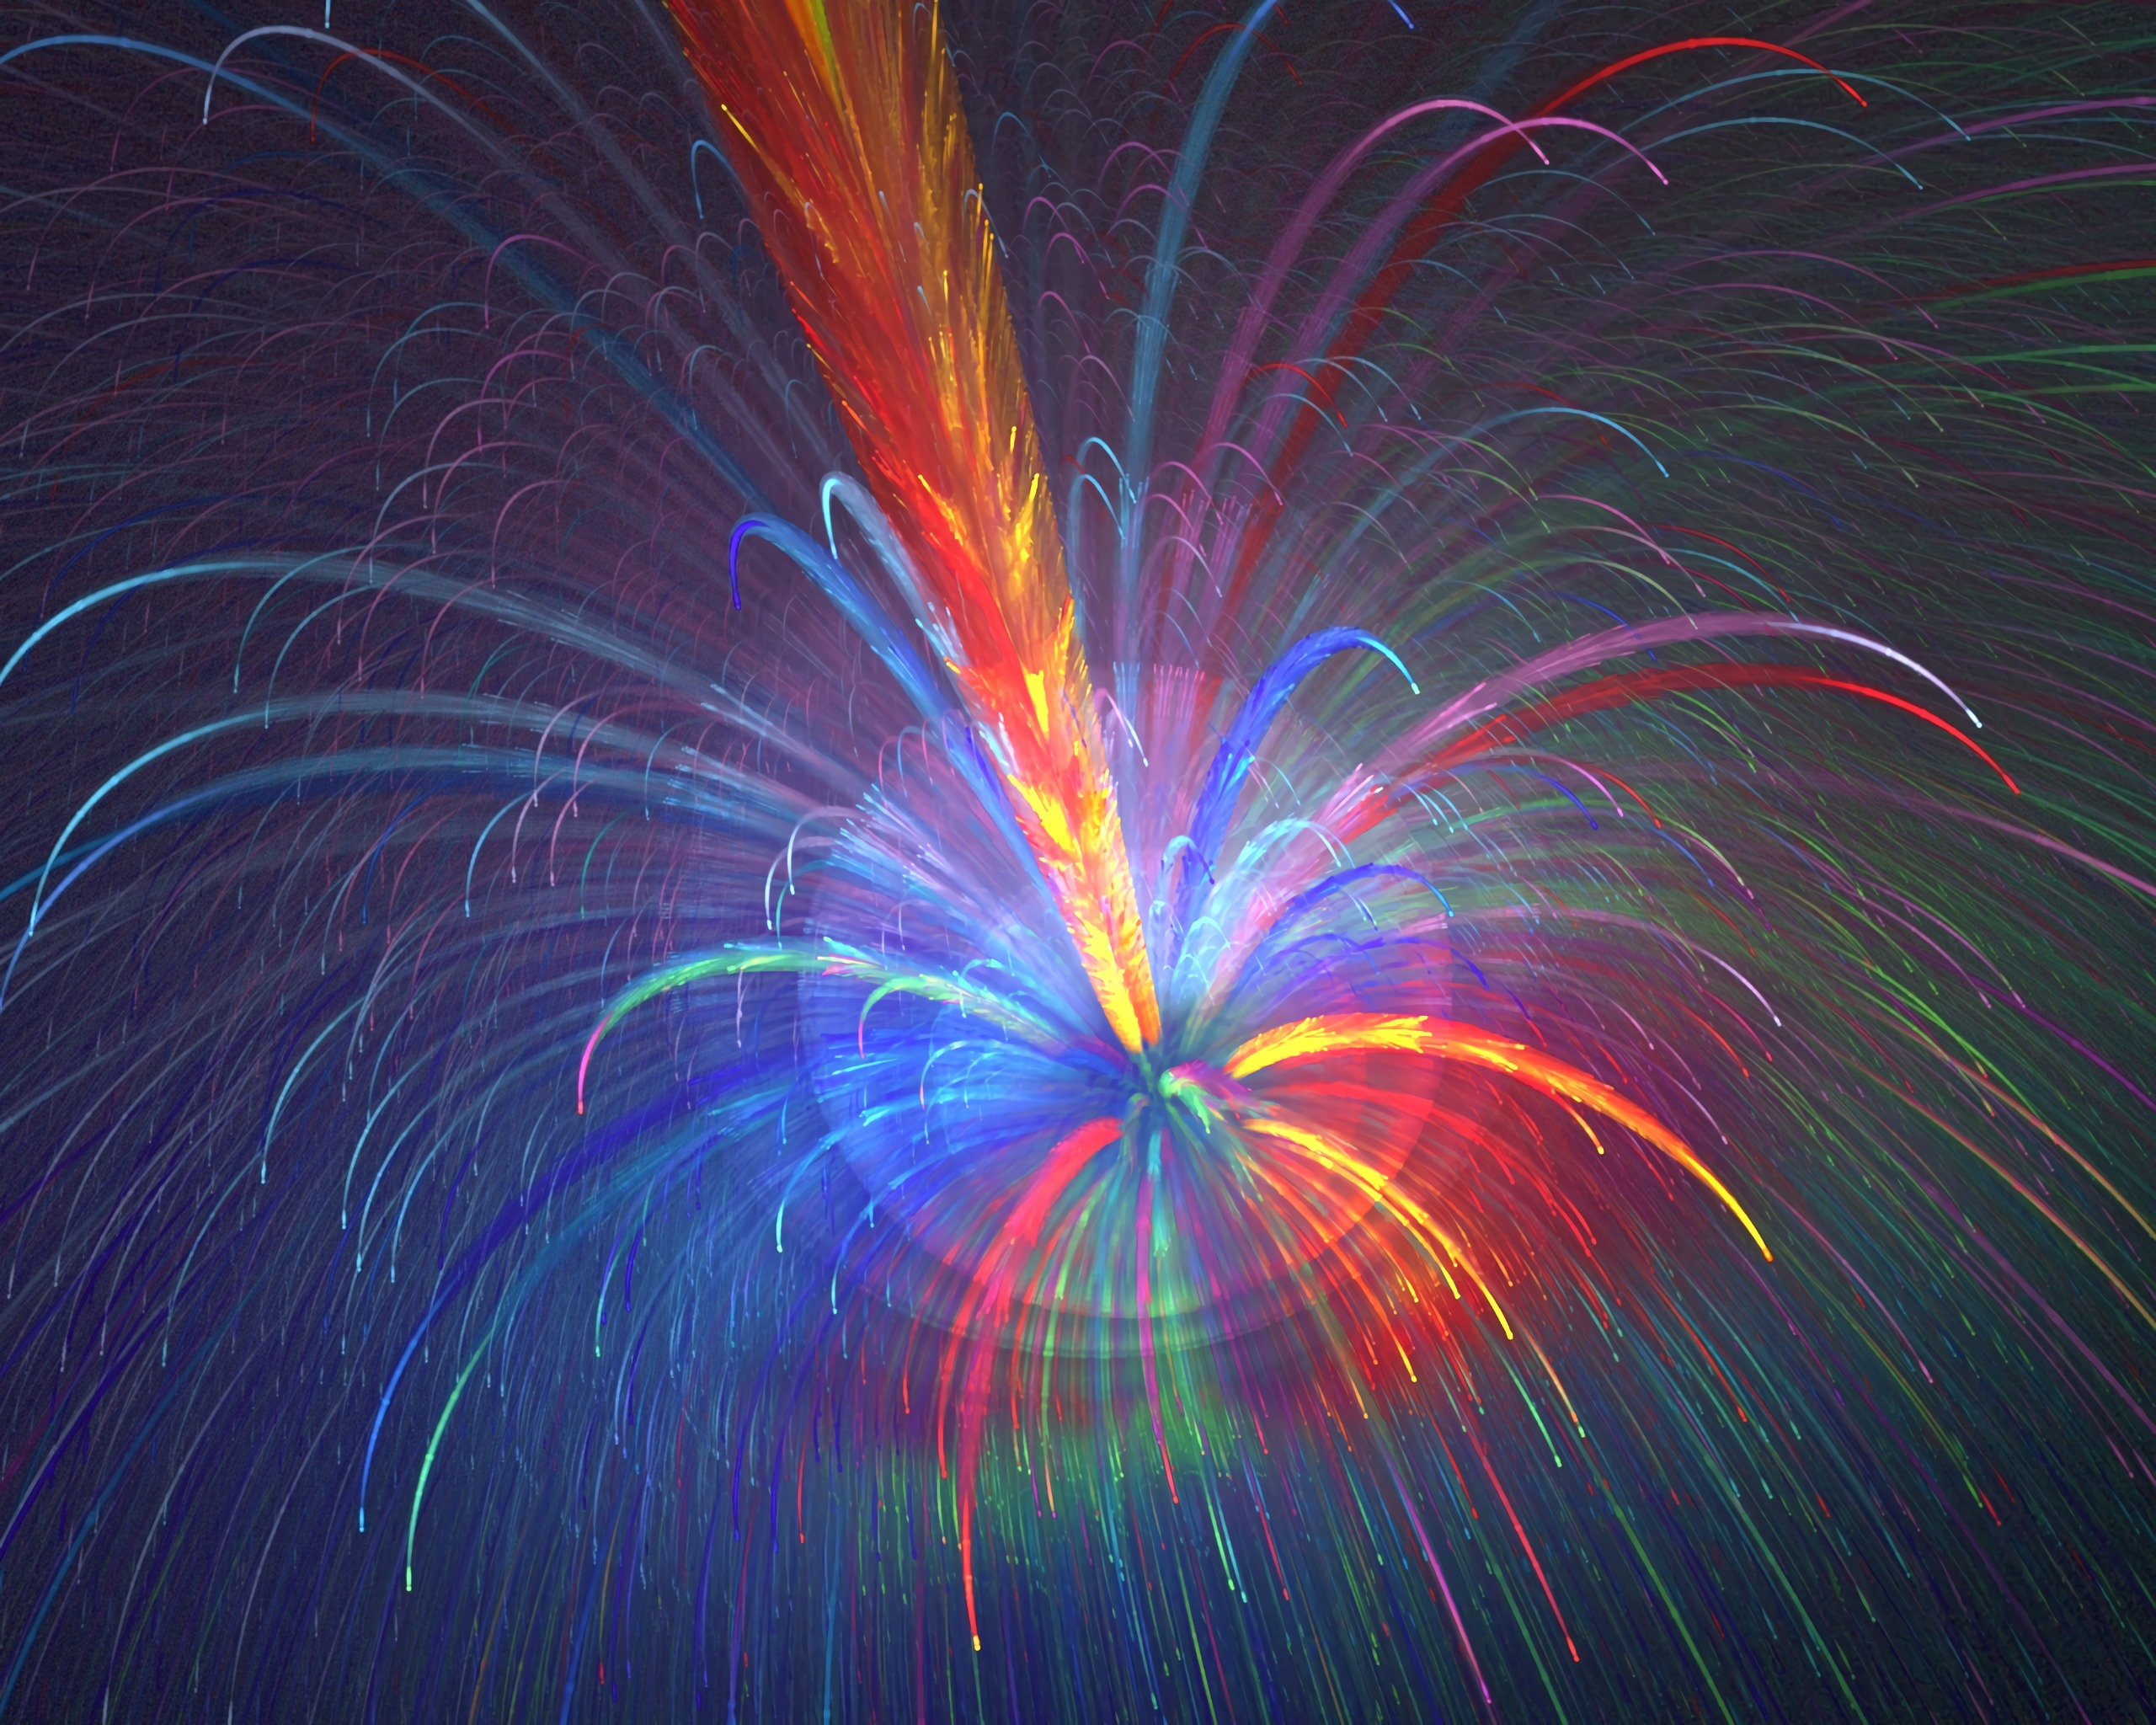 105318 download wallpaper Abstract, Fractal, Fireworks, Firework, Multicolored, Motley, Sparks screensavers and pictures for free